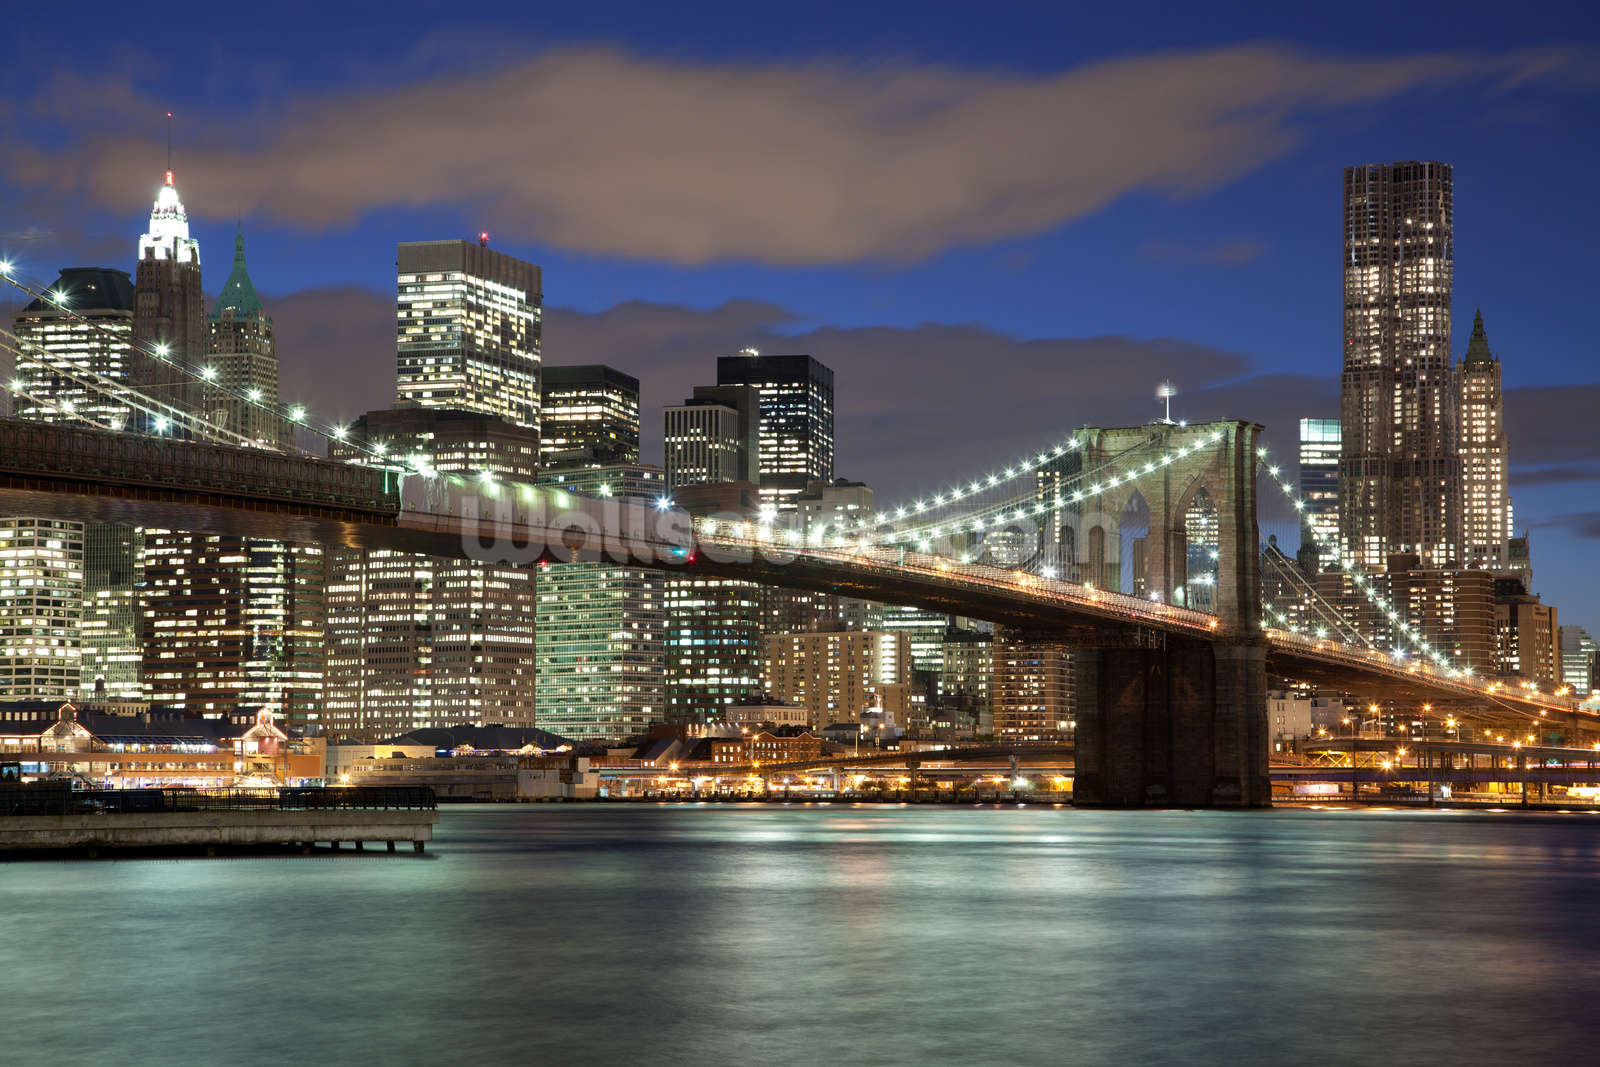 Ny brooklyn bridge wallpaper wall mural wallsauce for Brooklyn bridge mural wallpaper